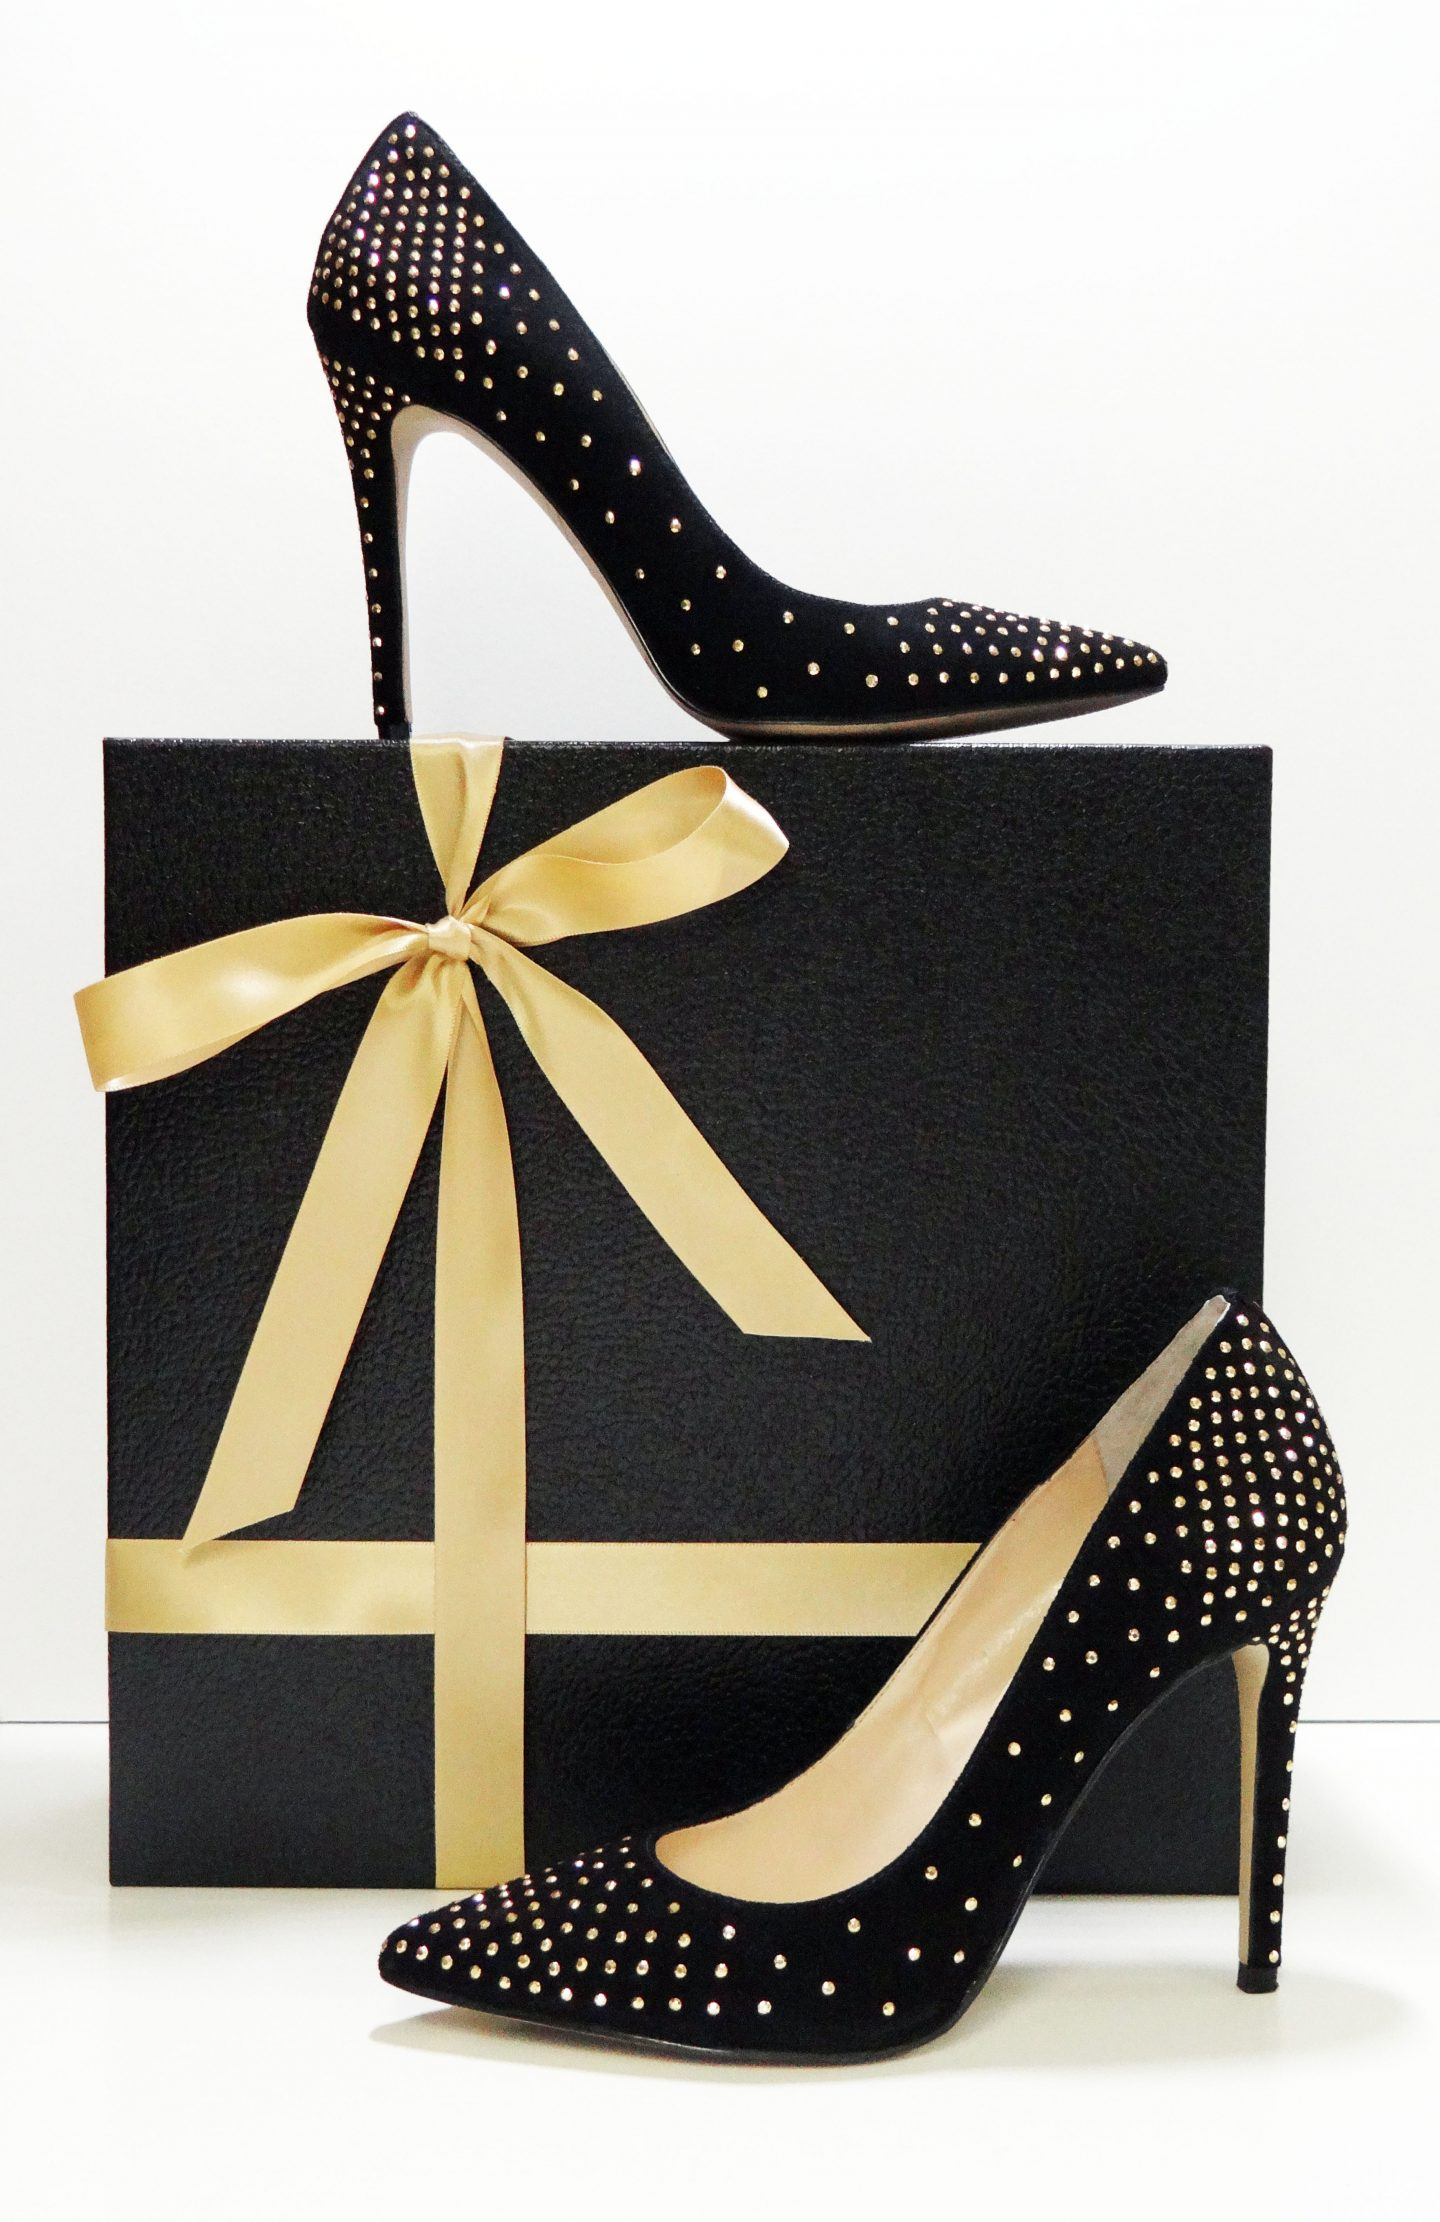 My New Black Suede, Gold Stud Embellished, Pumps